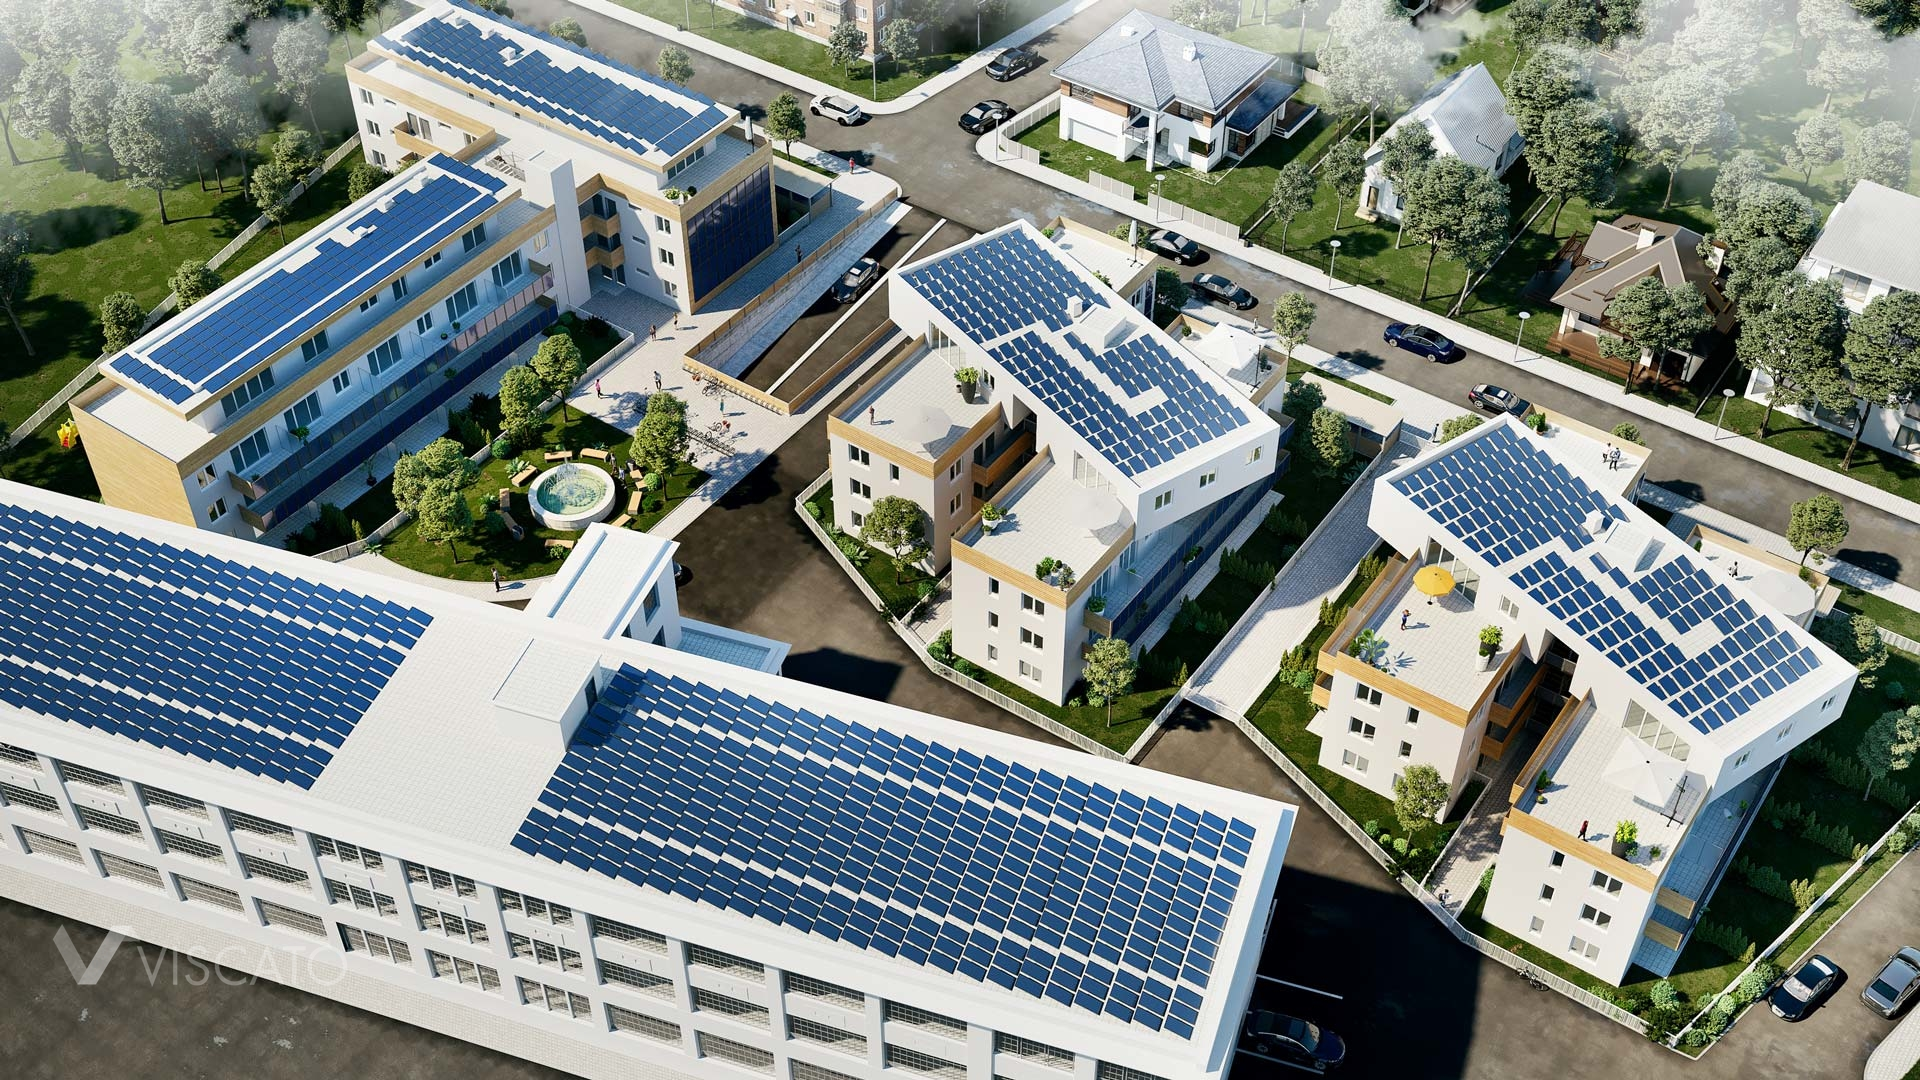 photovoltaic panels in 3D, Viscato